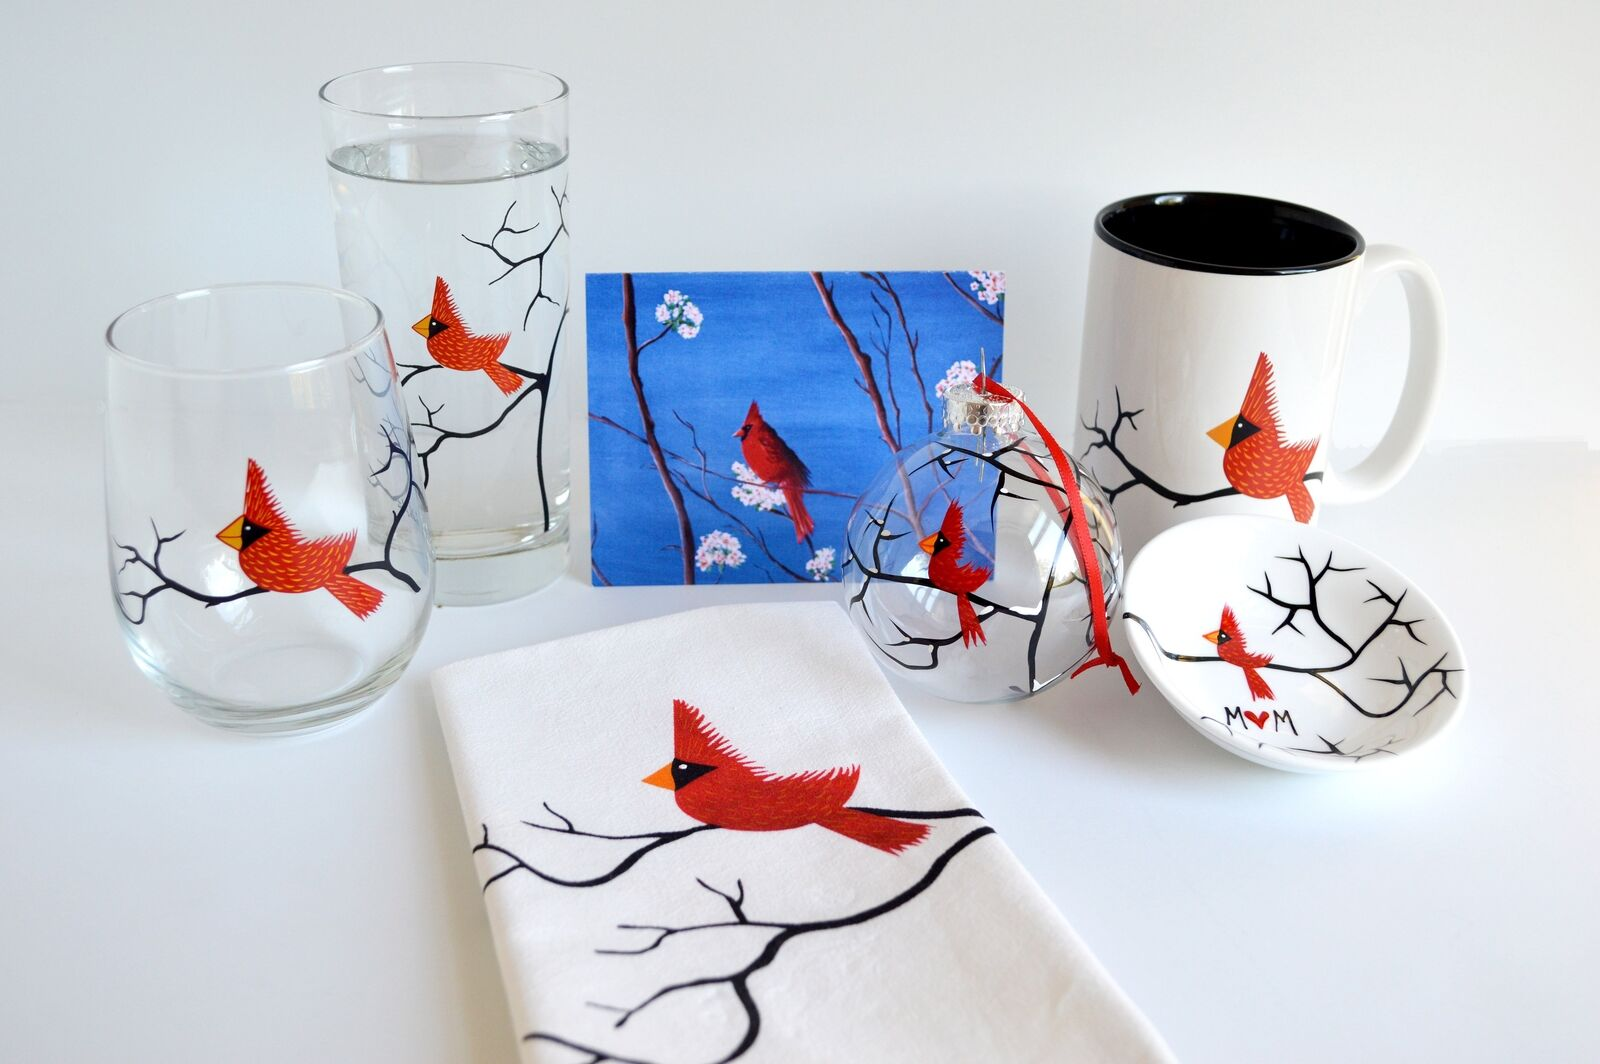 Christmas Cardinal Gift Set Collection - 7 Piece Personalized Gift Set